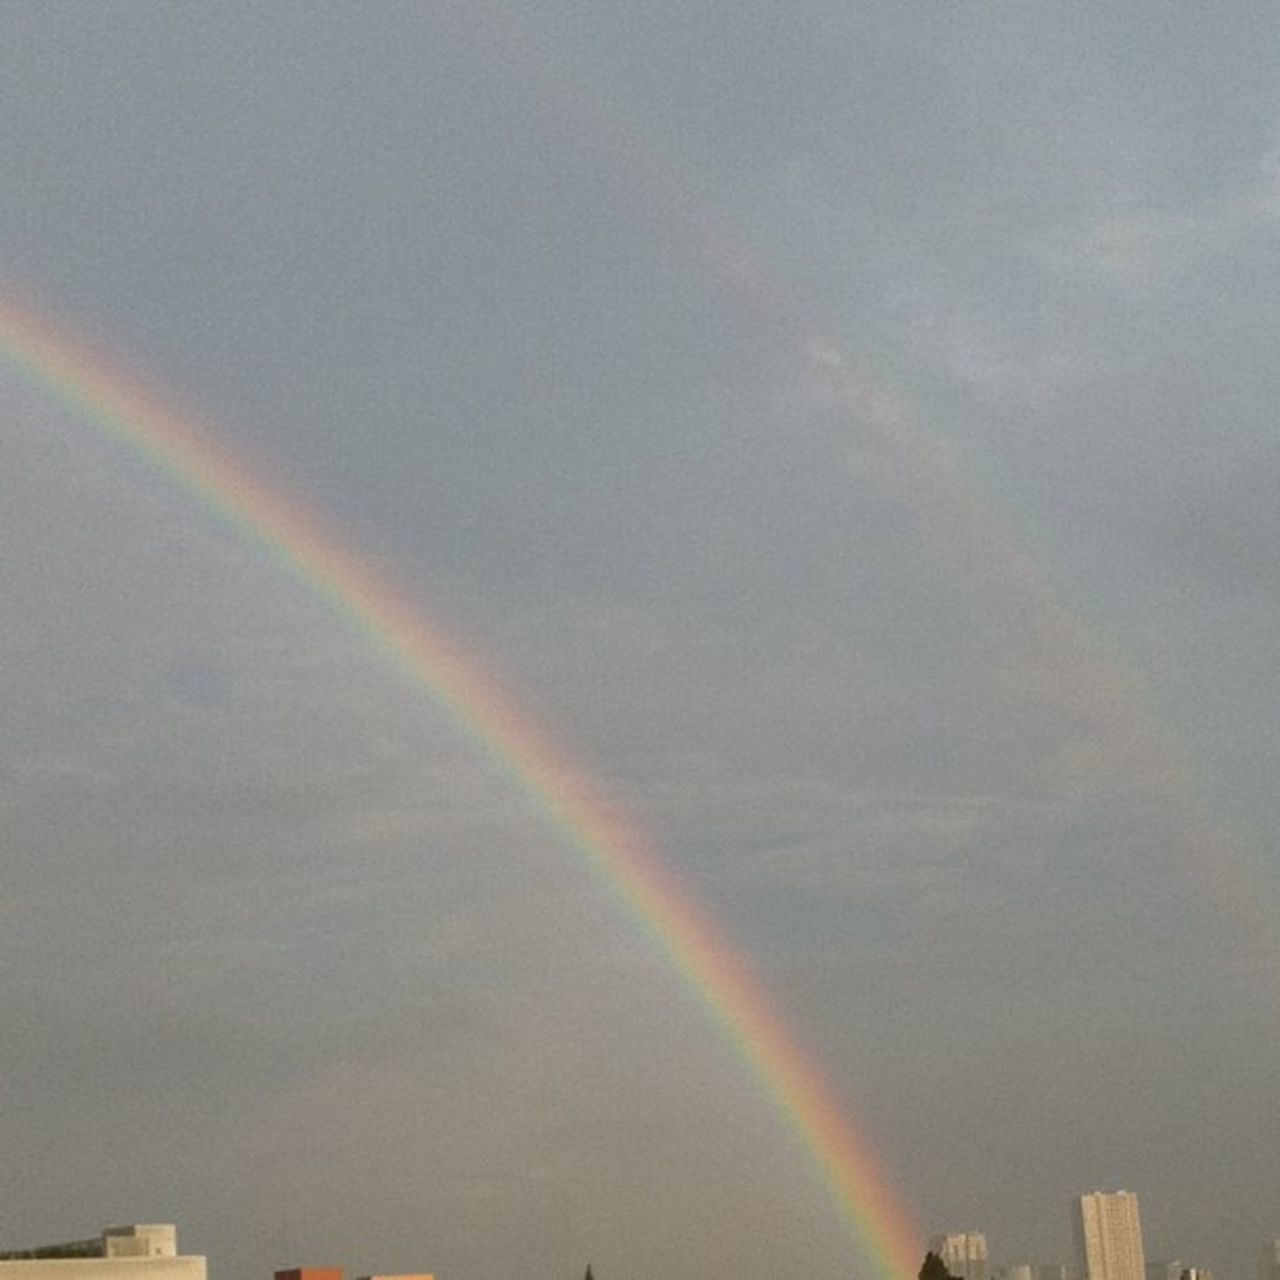 rainbow, double rainbow, multi colored, no people, scenics, spectrum, outdoors, day, sky, refraction, nature, beauty in nature